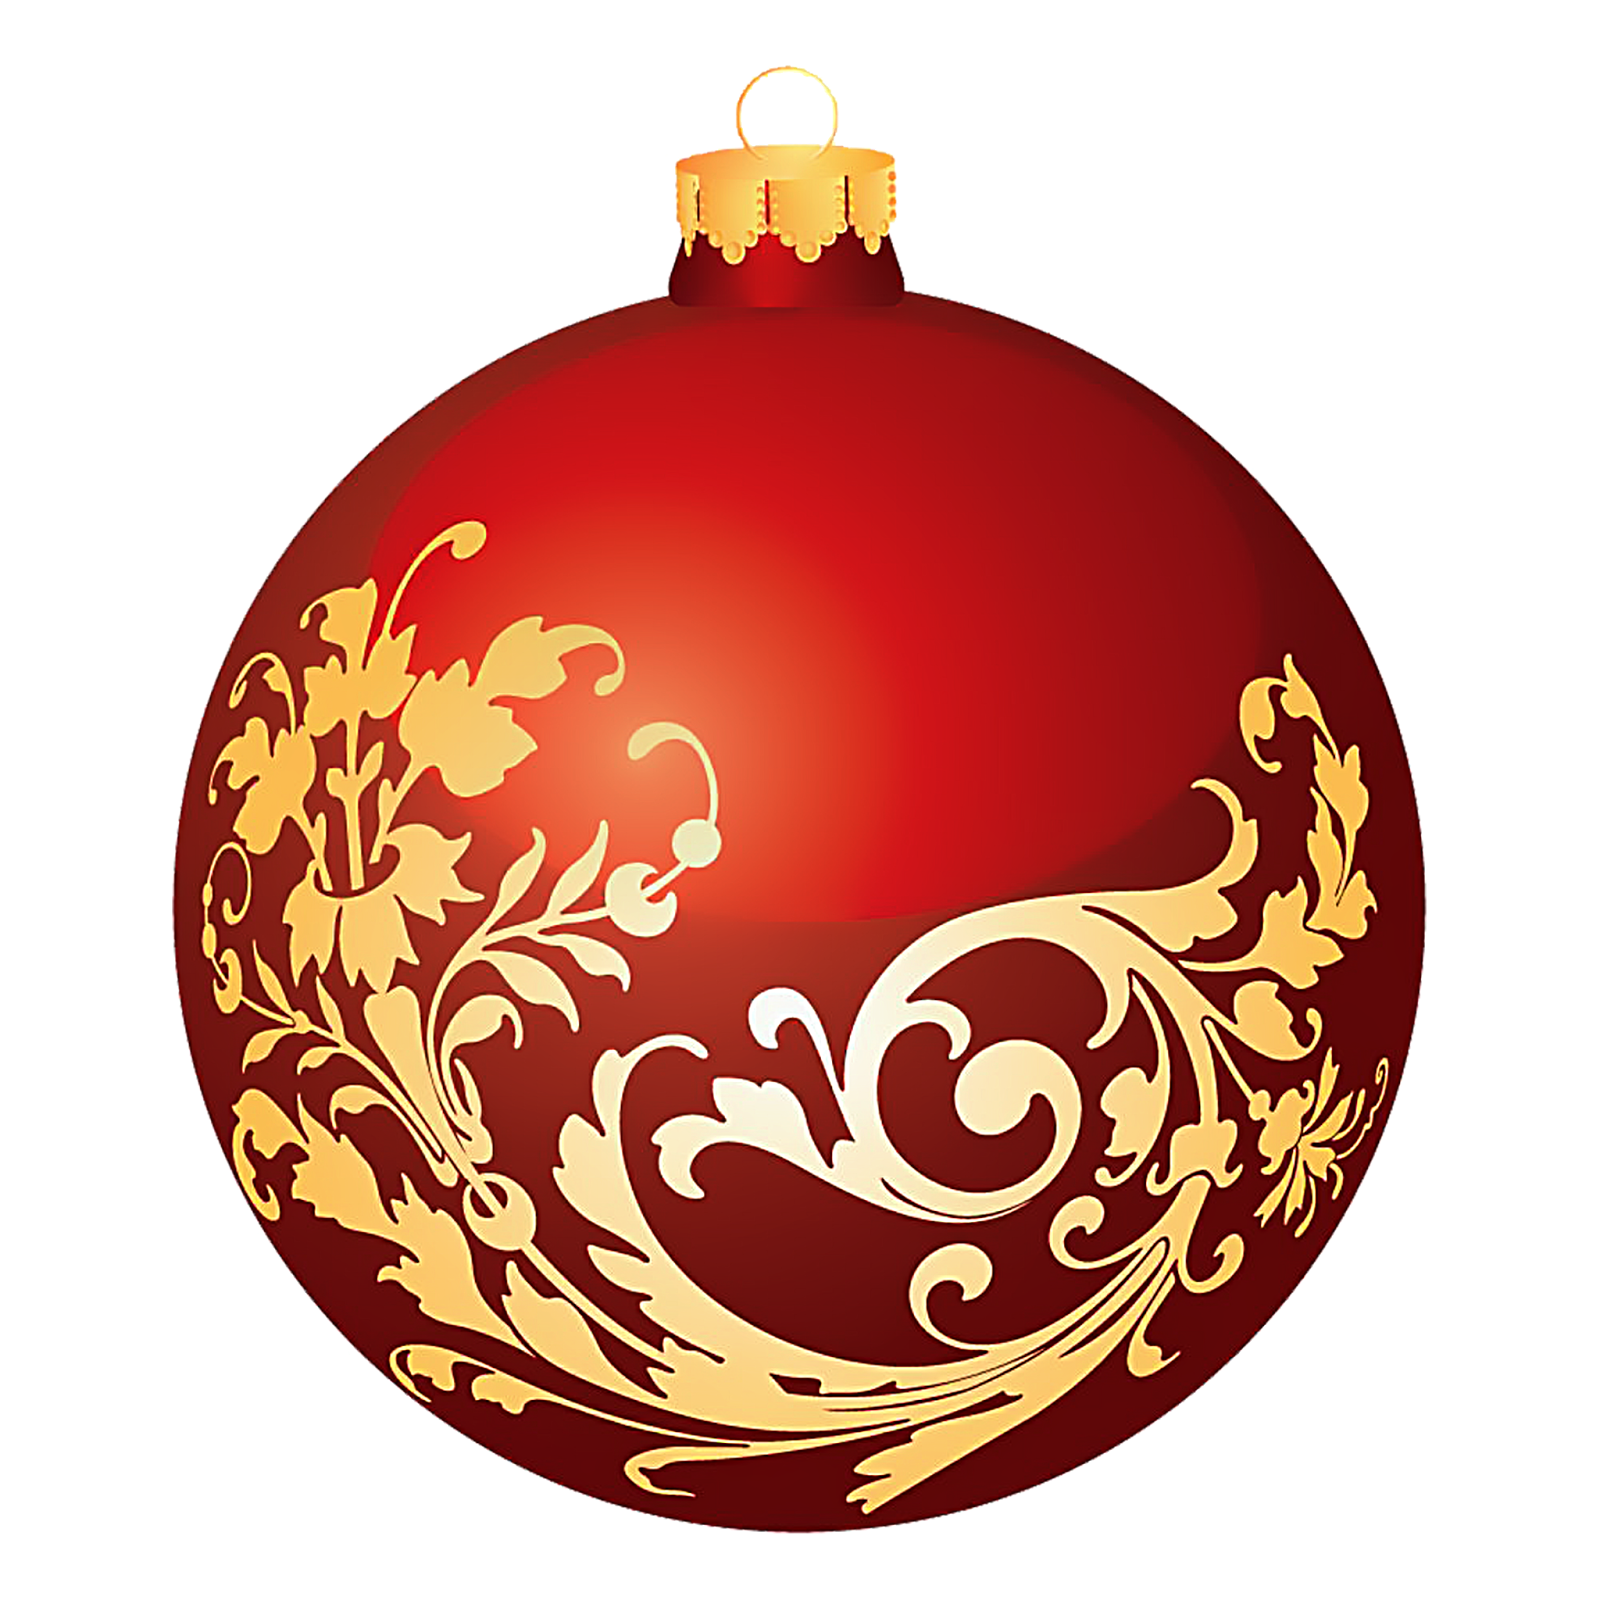 Merry Christmas Ball Clip Art For Cards Beautiful Christmas Ball In